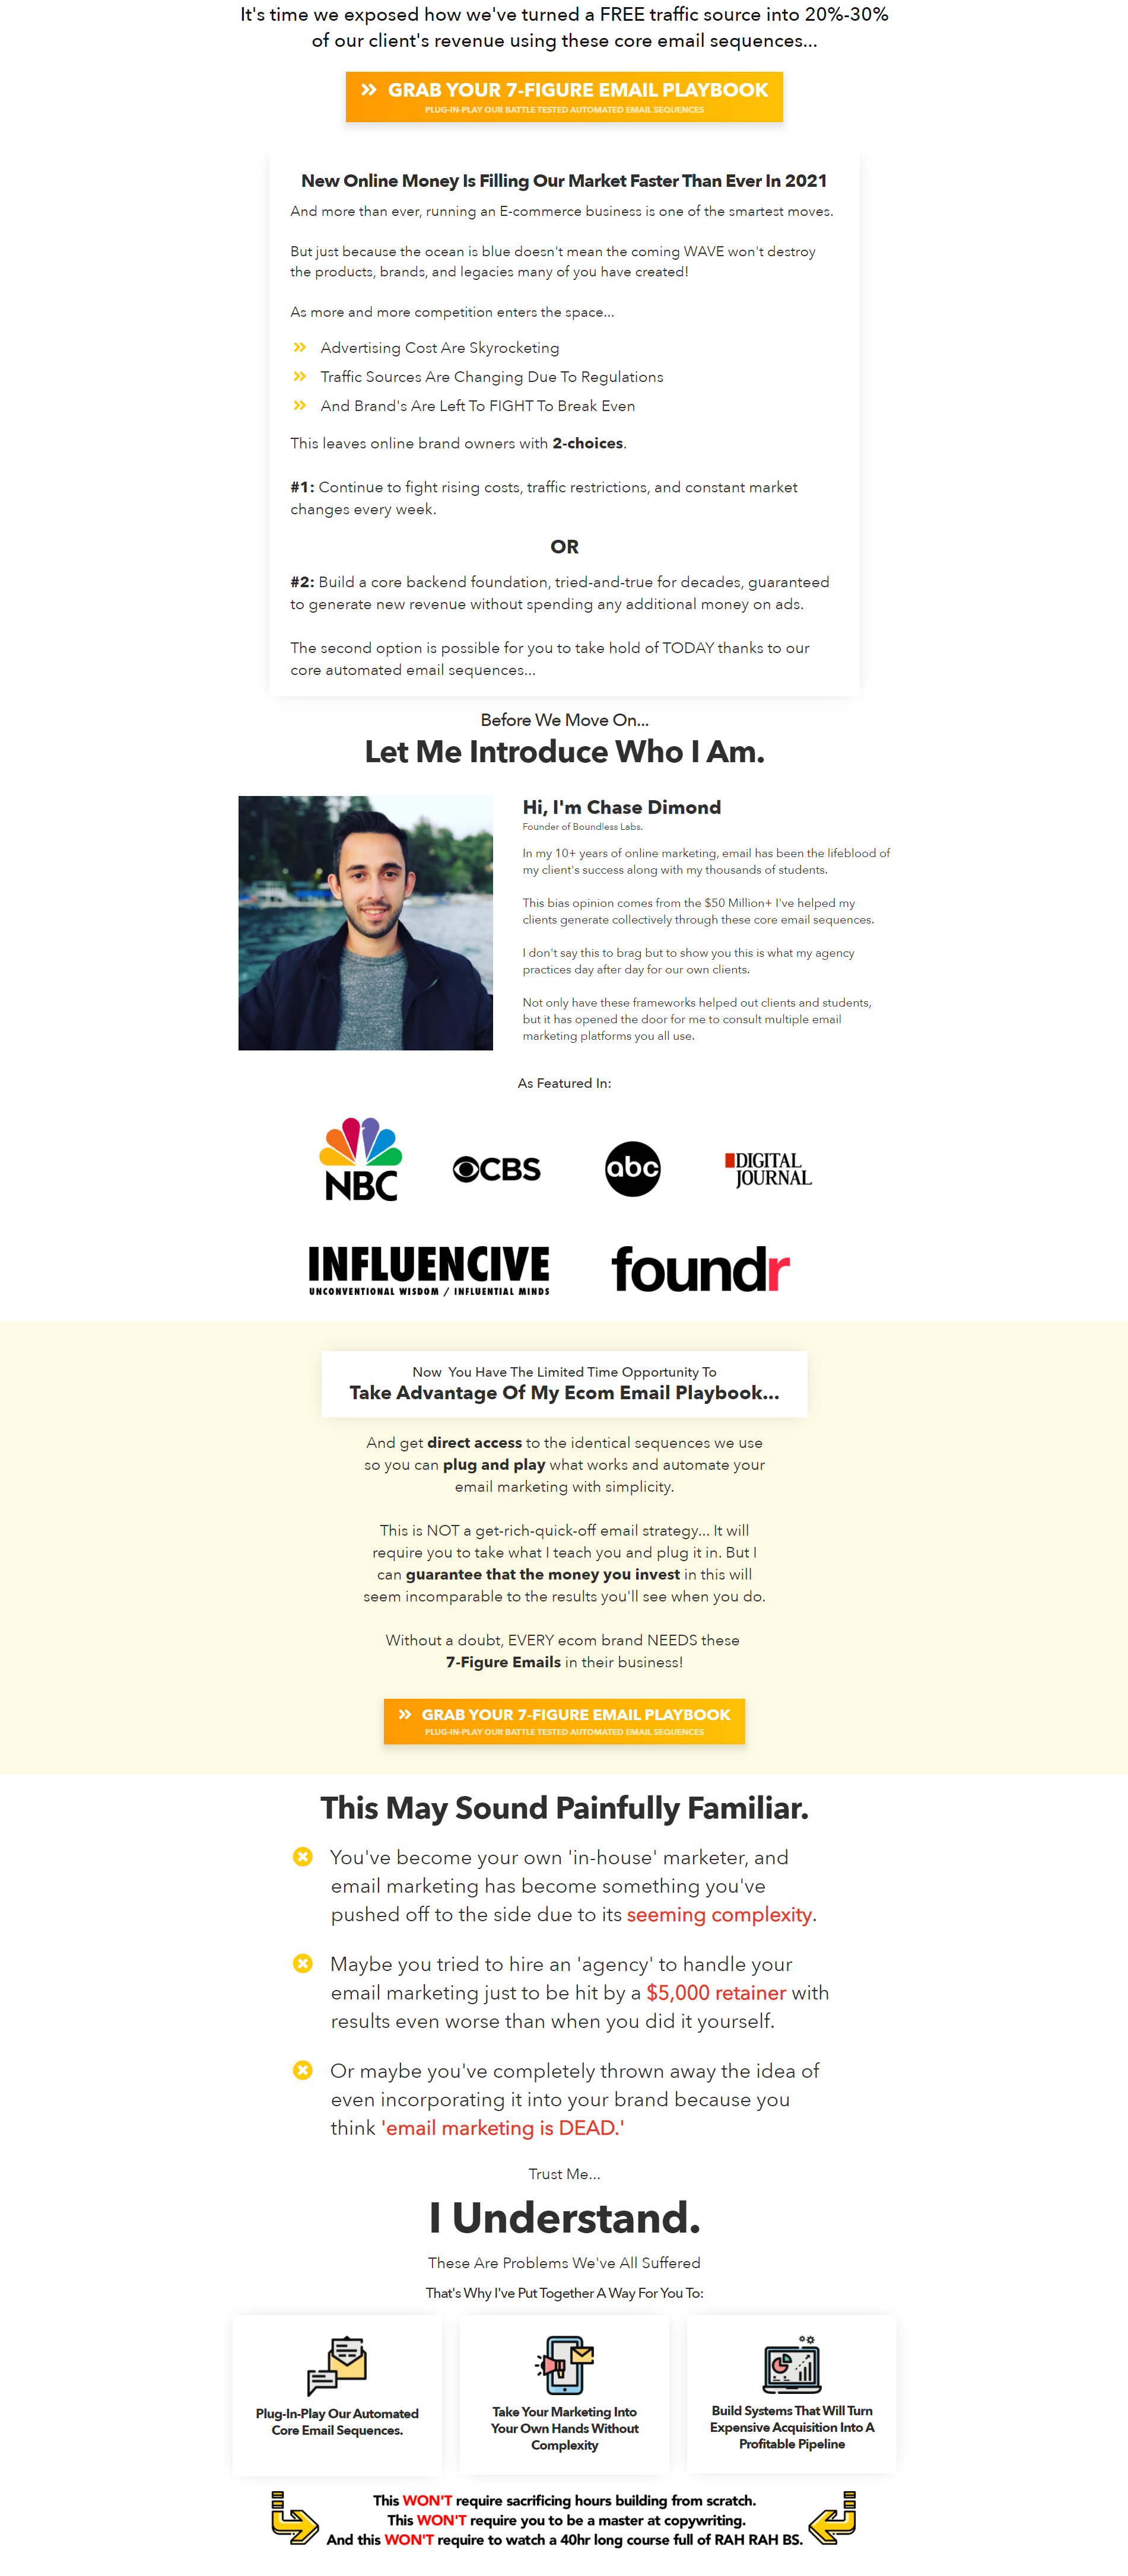 Chase Dimond – 7-Figure Email Playbook